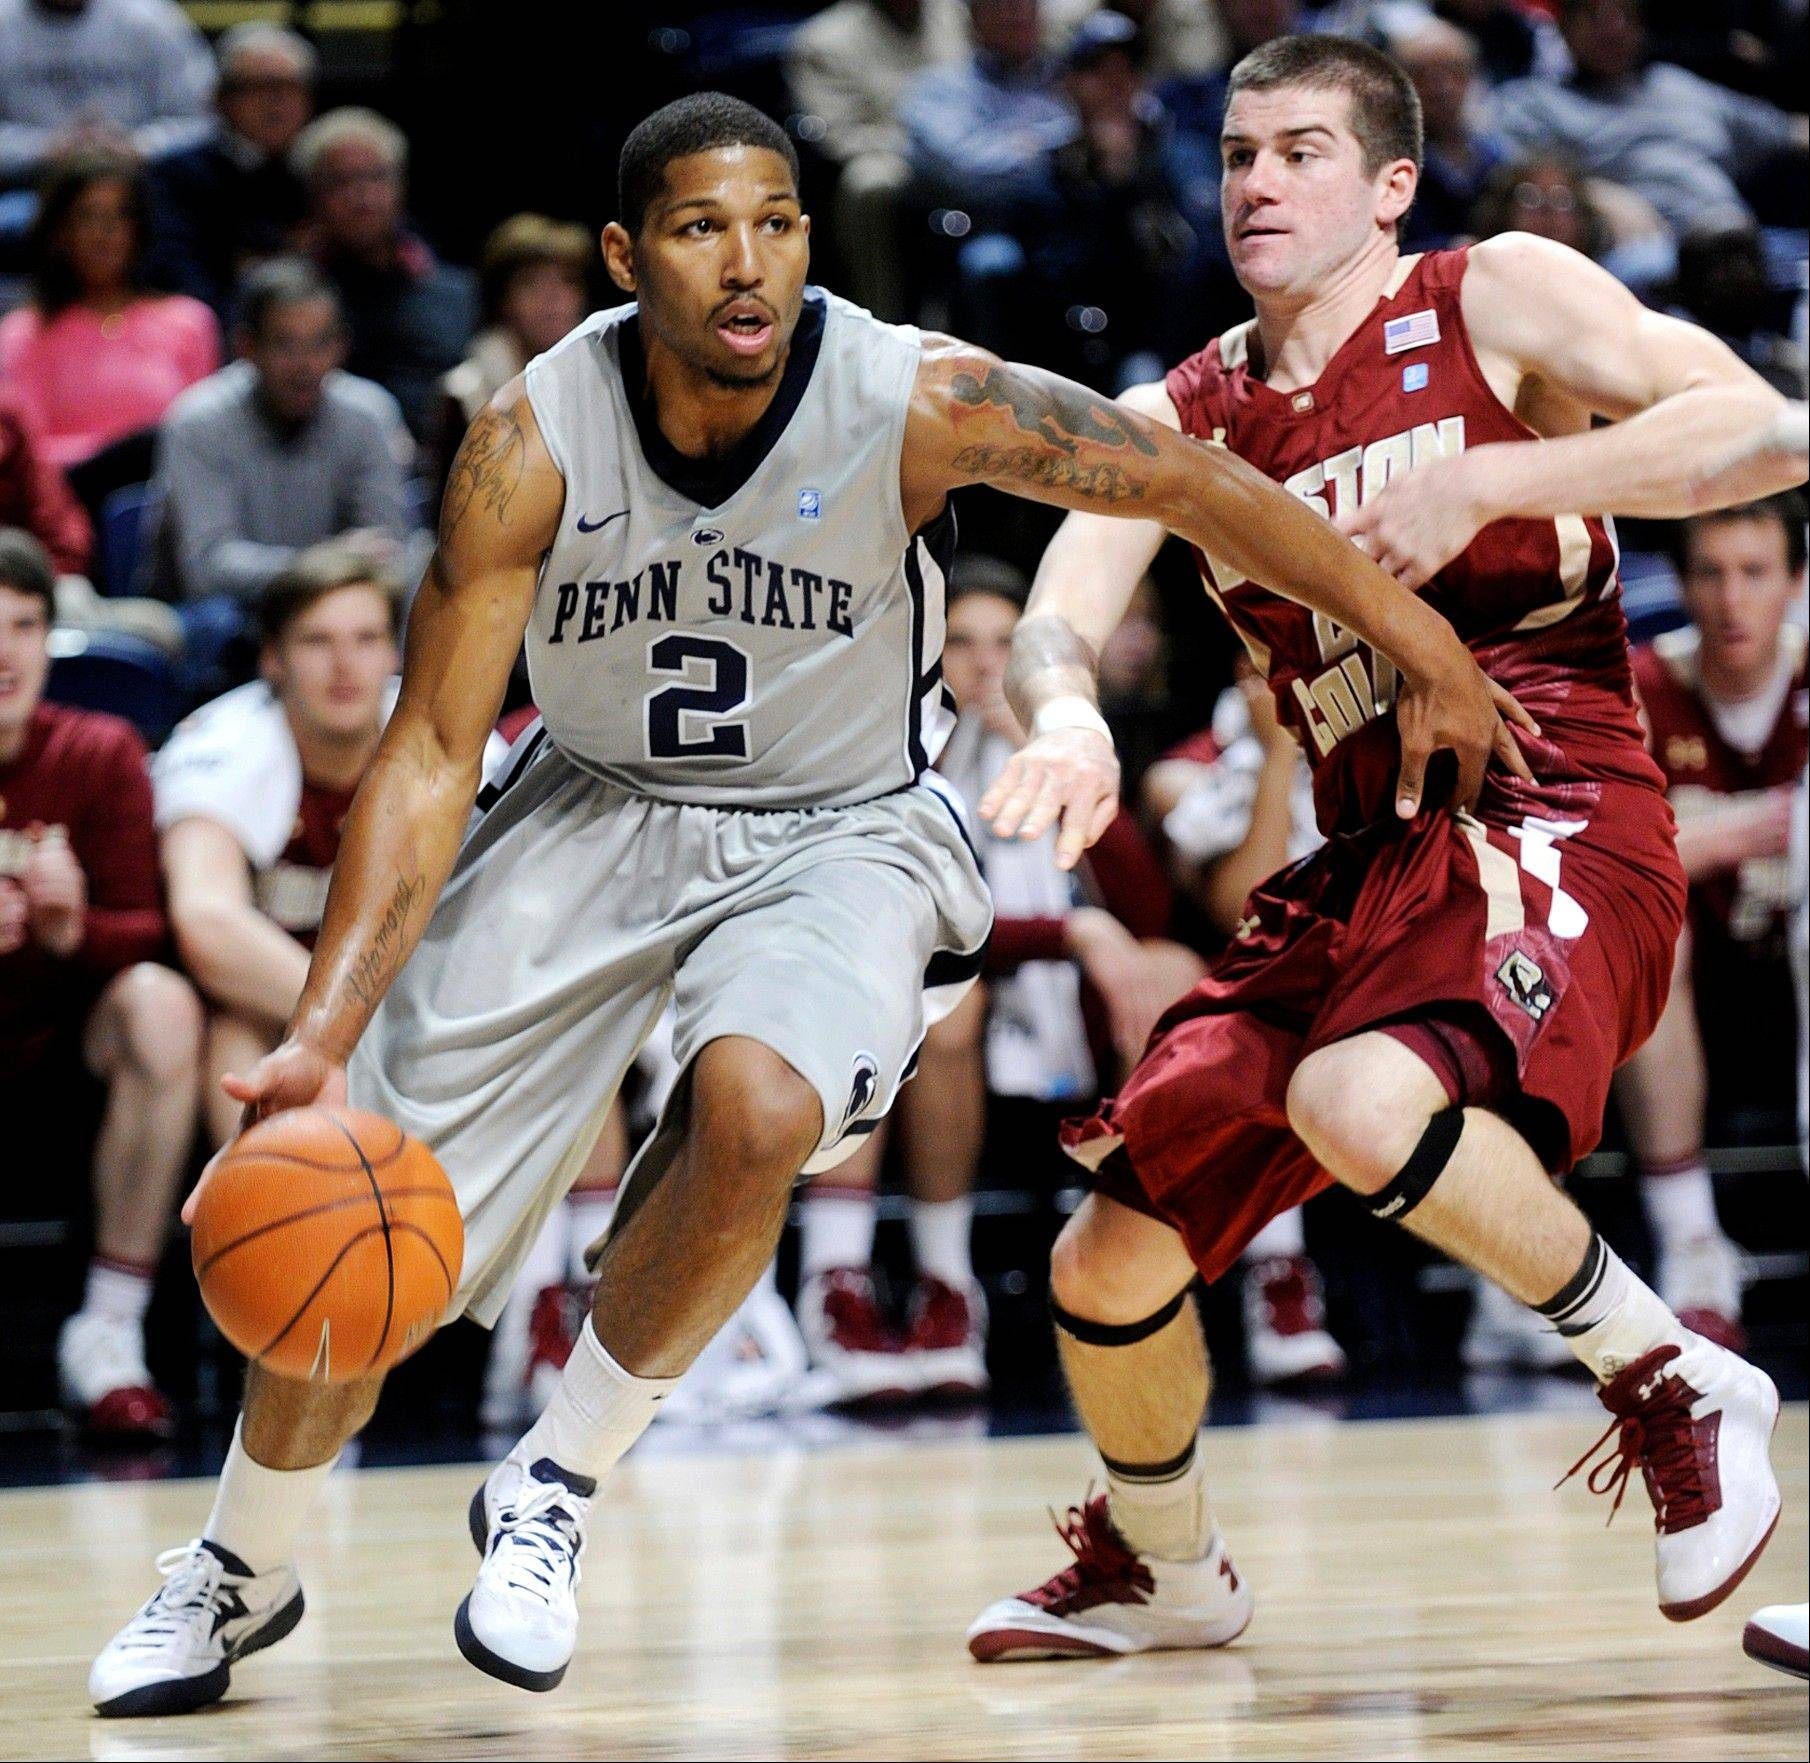 Penn State's D.J. Newbill dribbles around Boston College's Joe Rahon Wednesday in State College, Pa.